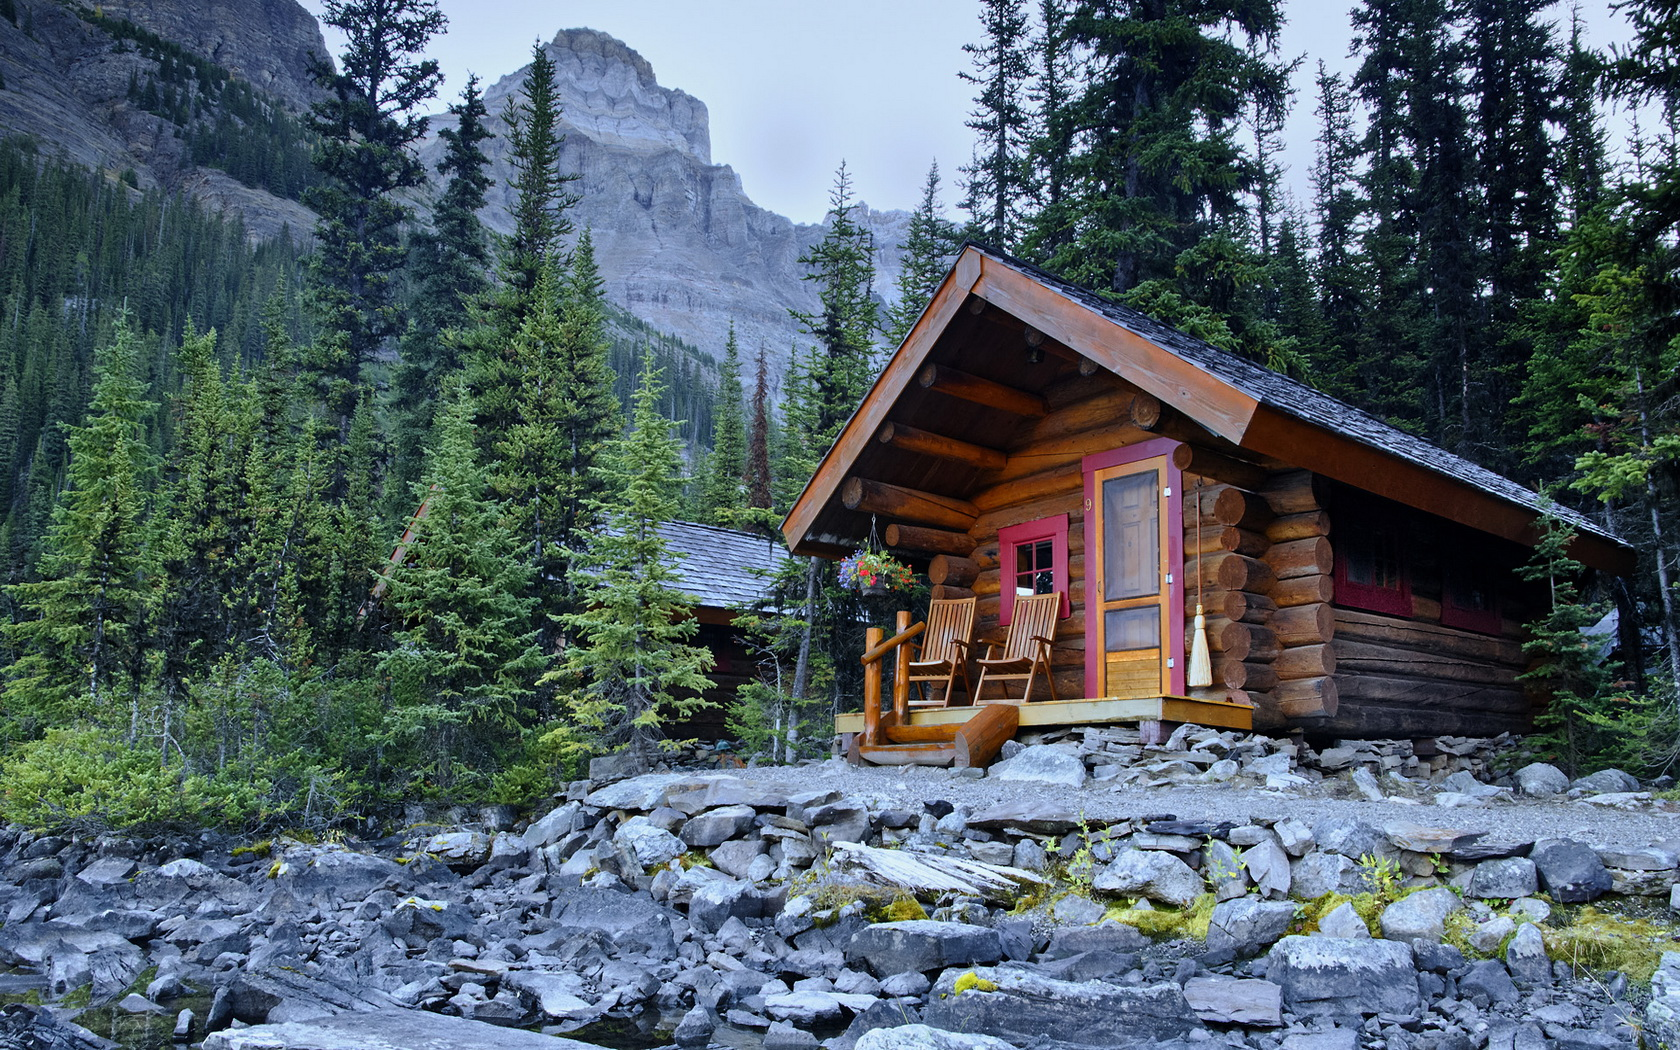 Log cabin in the woods by a lake - Cabin Wallpaper 760116 Cabin Wallpaper 760127 Log Cabin Wallpaper